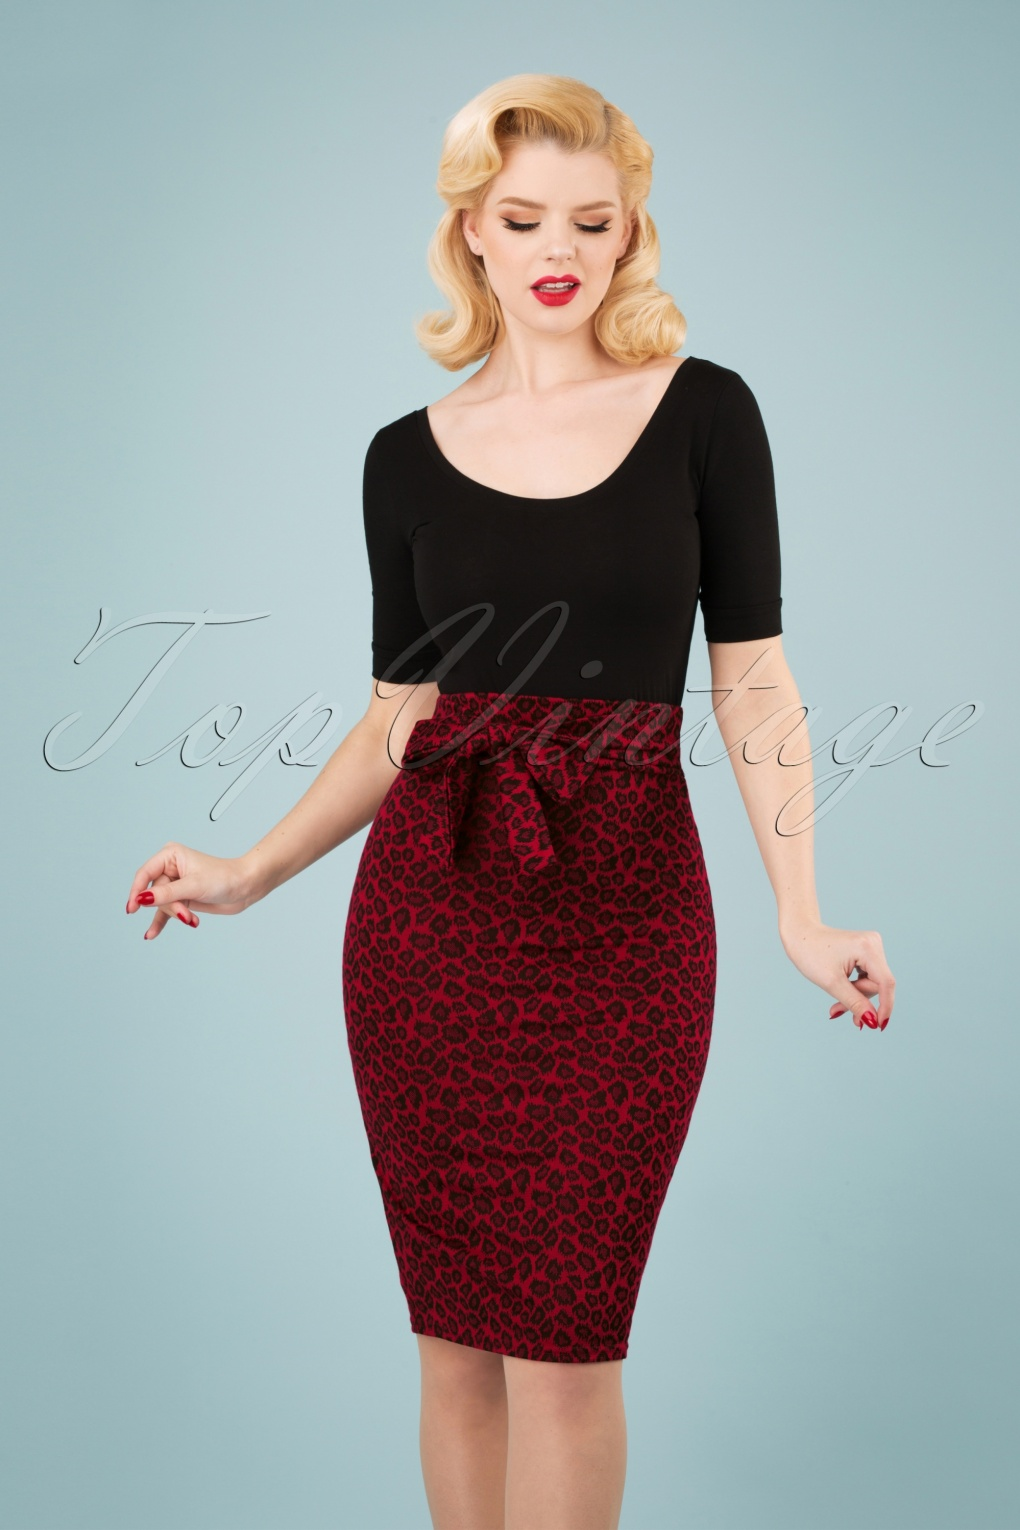 50s Skirt Styles | Poodle Skirts, Circle Skirts, Pencil Skirts 50s Shana Leopard Pencil Skirt in Red £30.04 AT vintagedancer.com